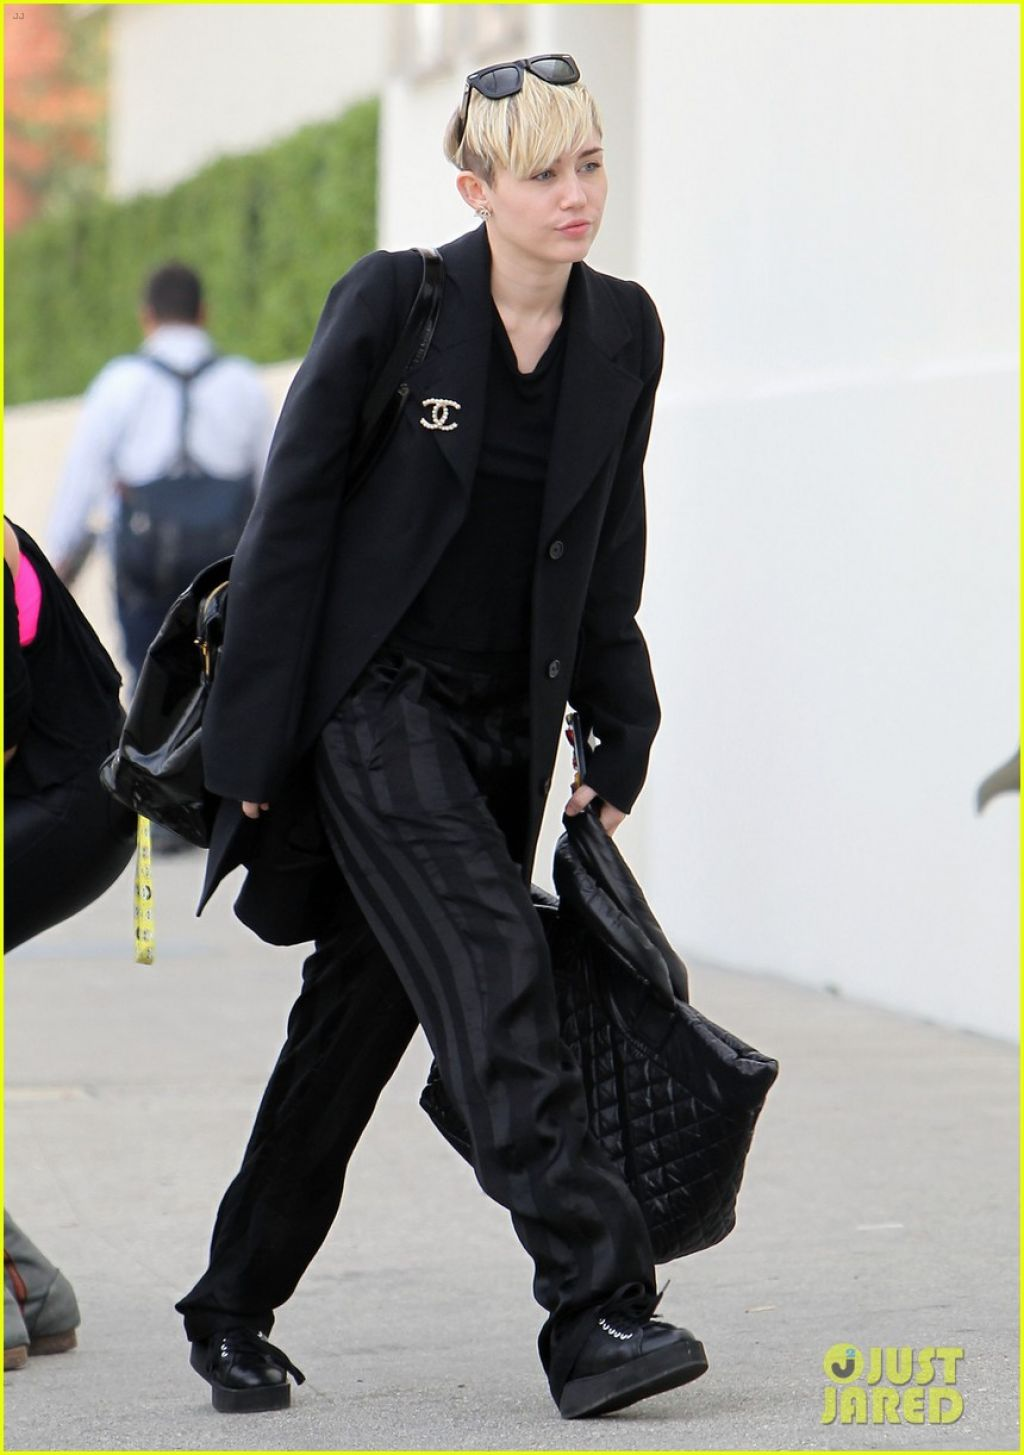 Miley Cyrus Street Style Out For Lunch In Los Angeles Januaru 2014